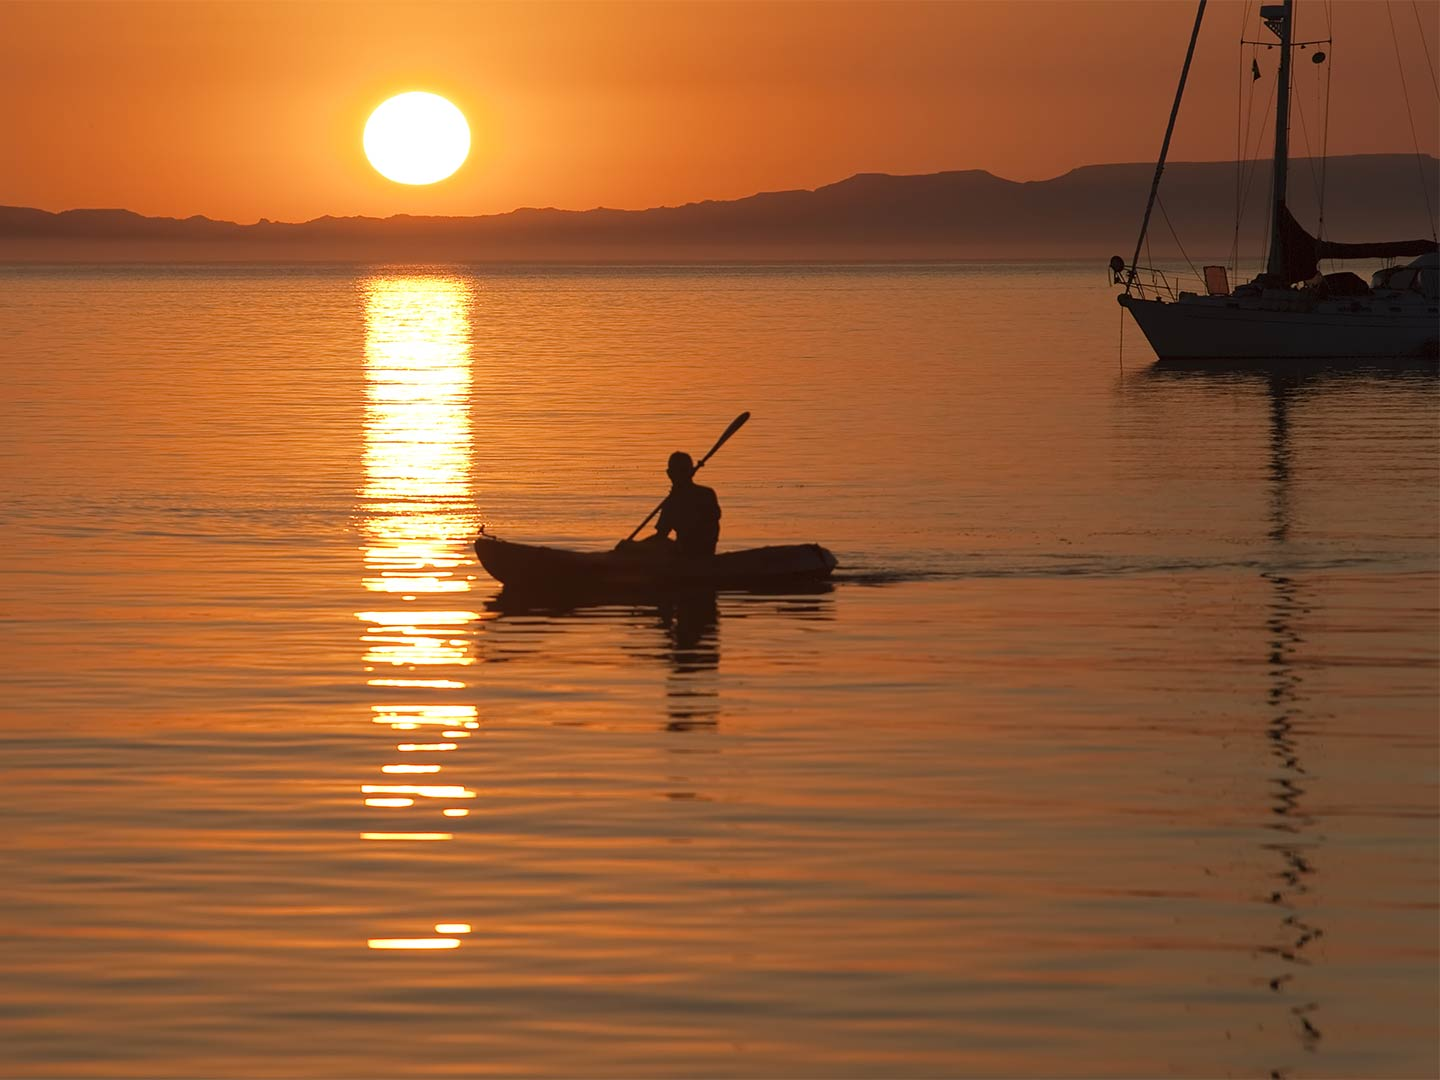 A kayaker paddles along the calm inshore waters out of La Paz as the sun sets